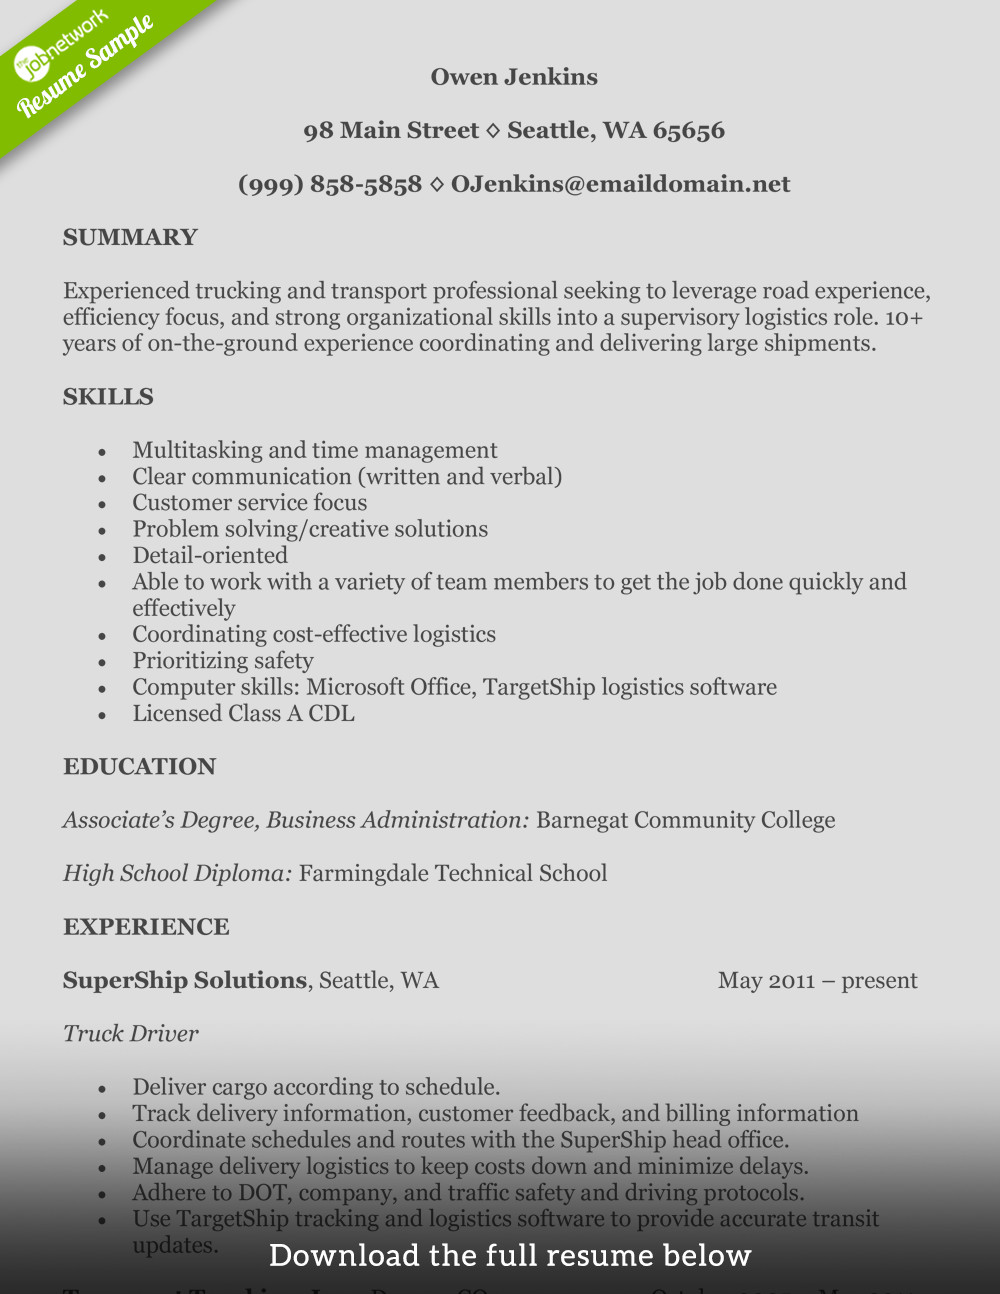 Truck Driver Resume Template How to Write A Perfect Truck Driver Resume with Examples